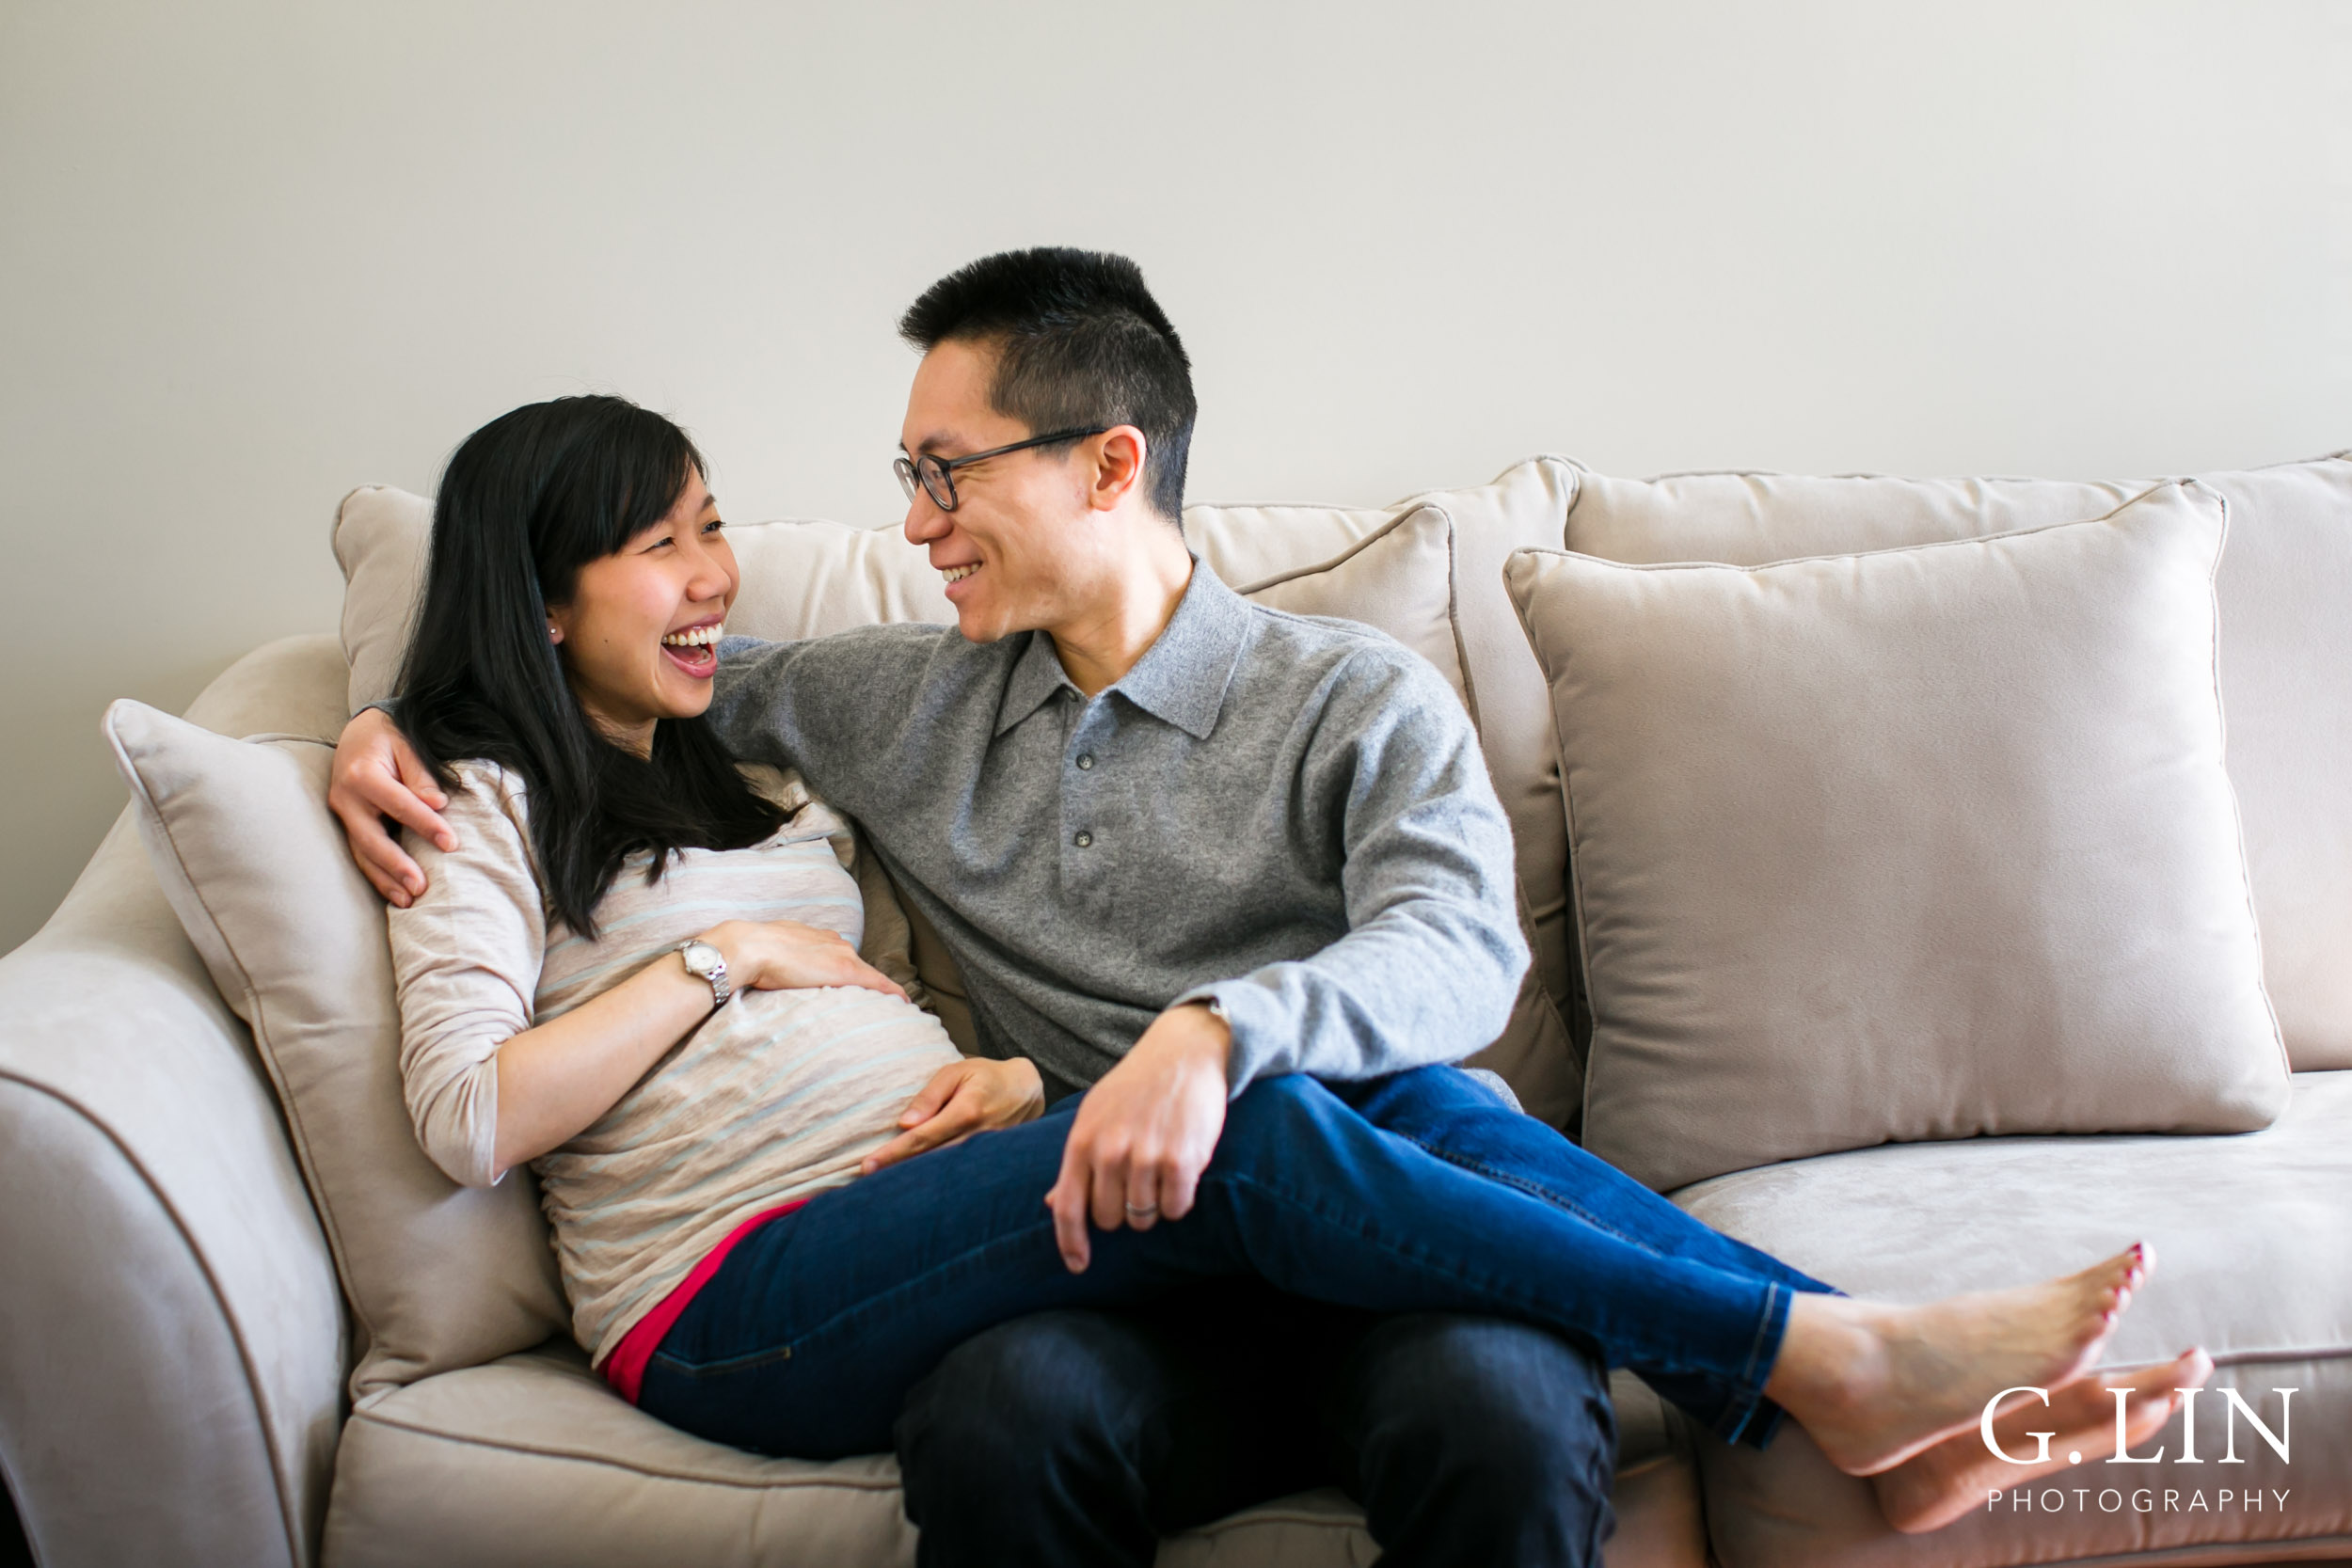 Durham Maternity Photography | G. Lin Photography | Couple sitting on couch and laughing